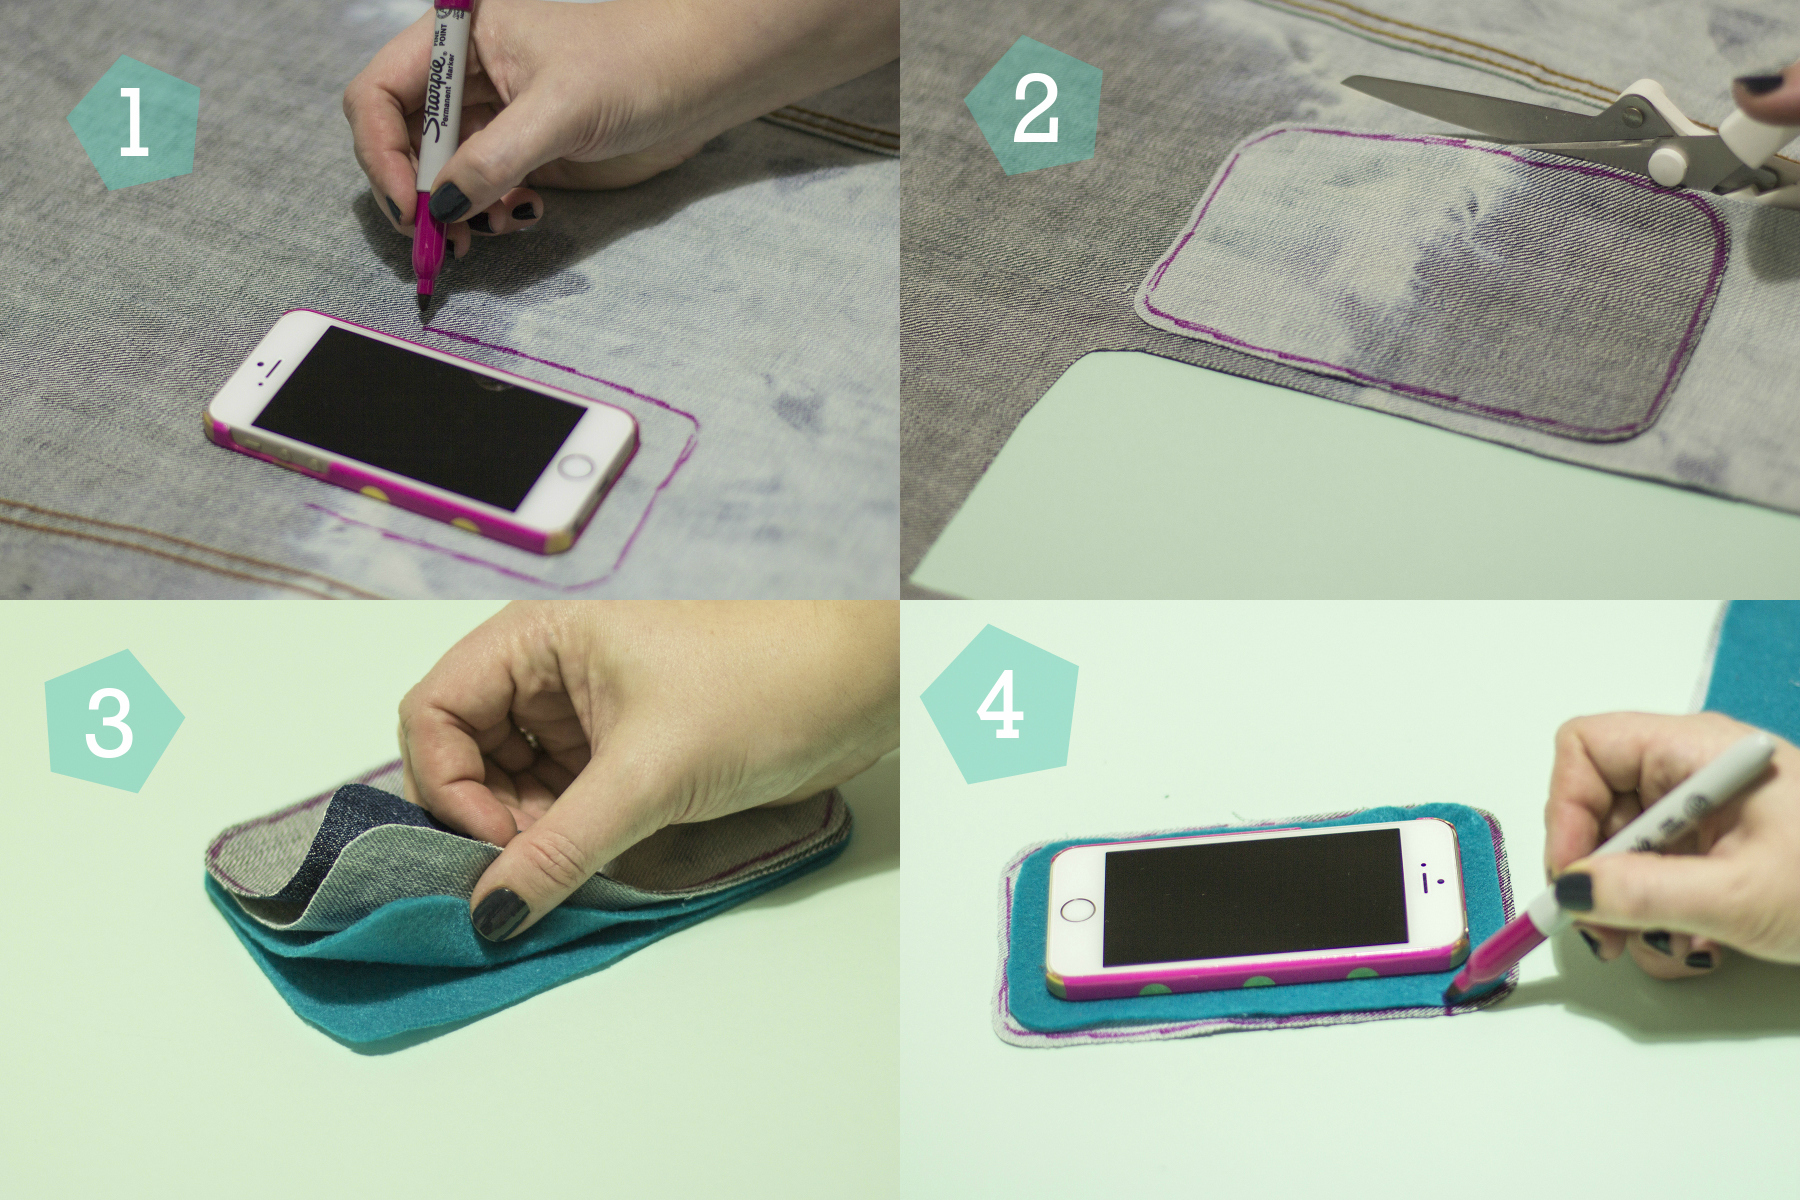 Simple Craft Tutorial: Upcycled Phone Case Steps 1-2-4